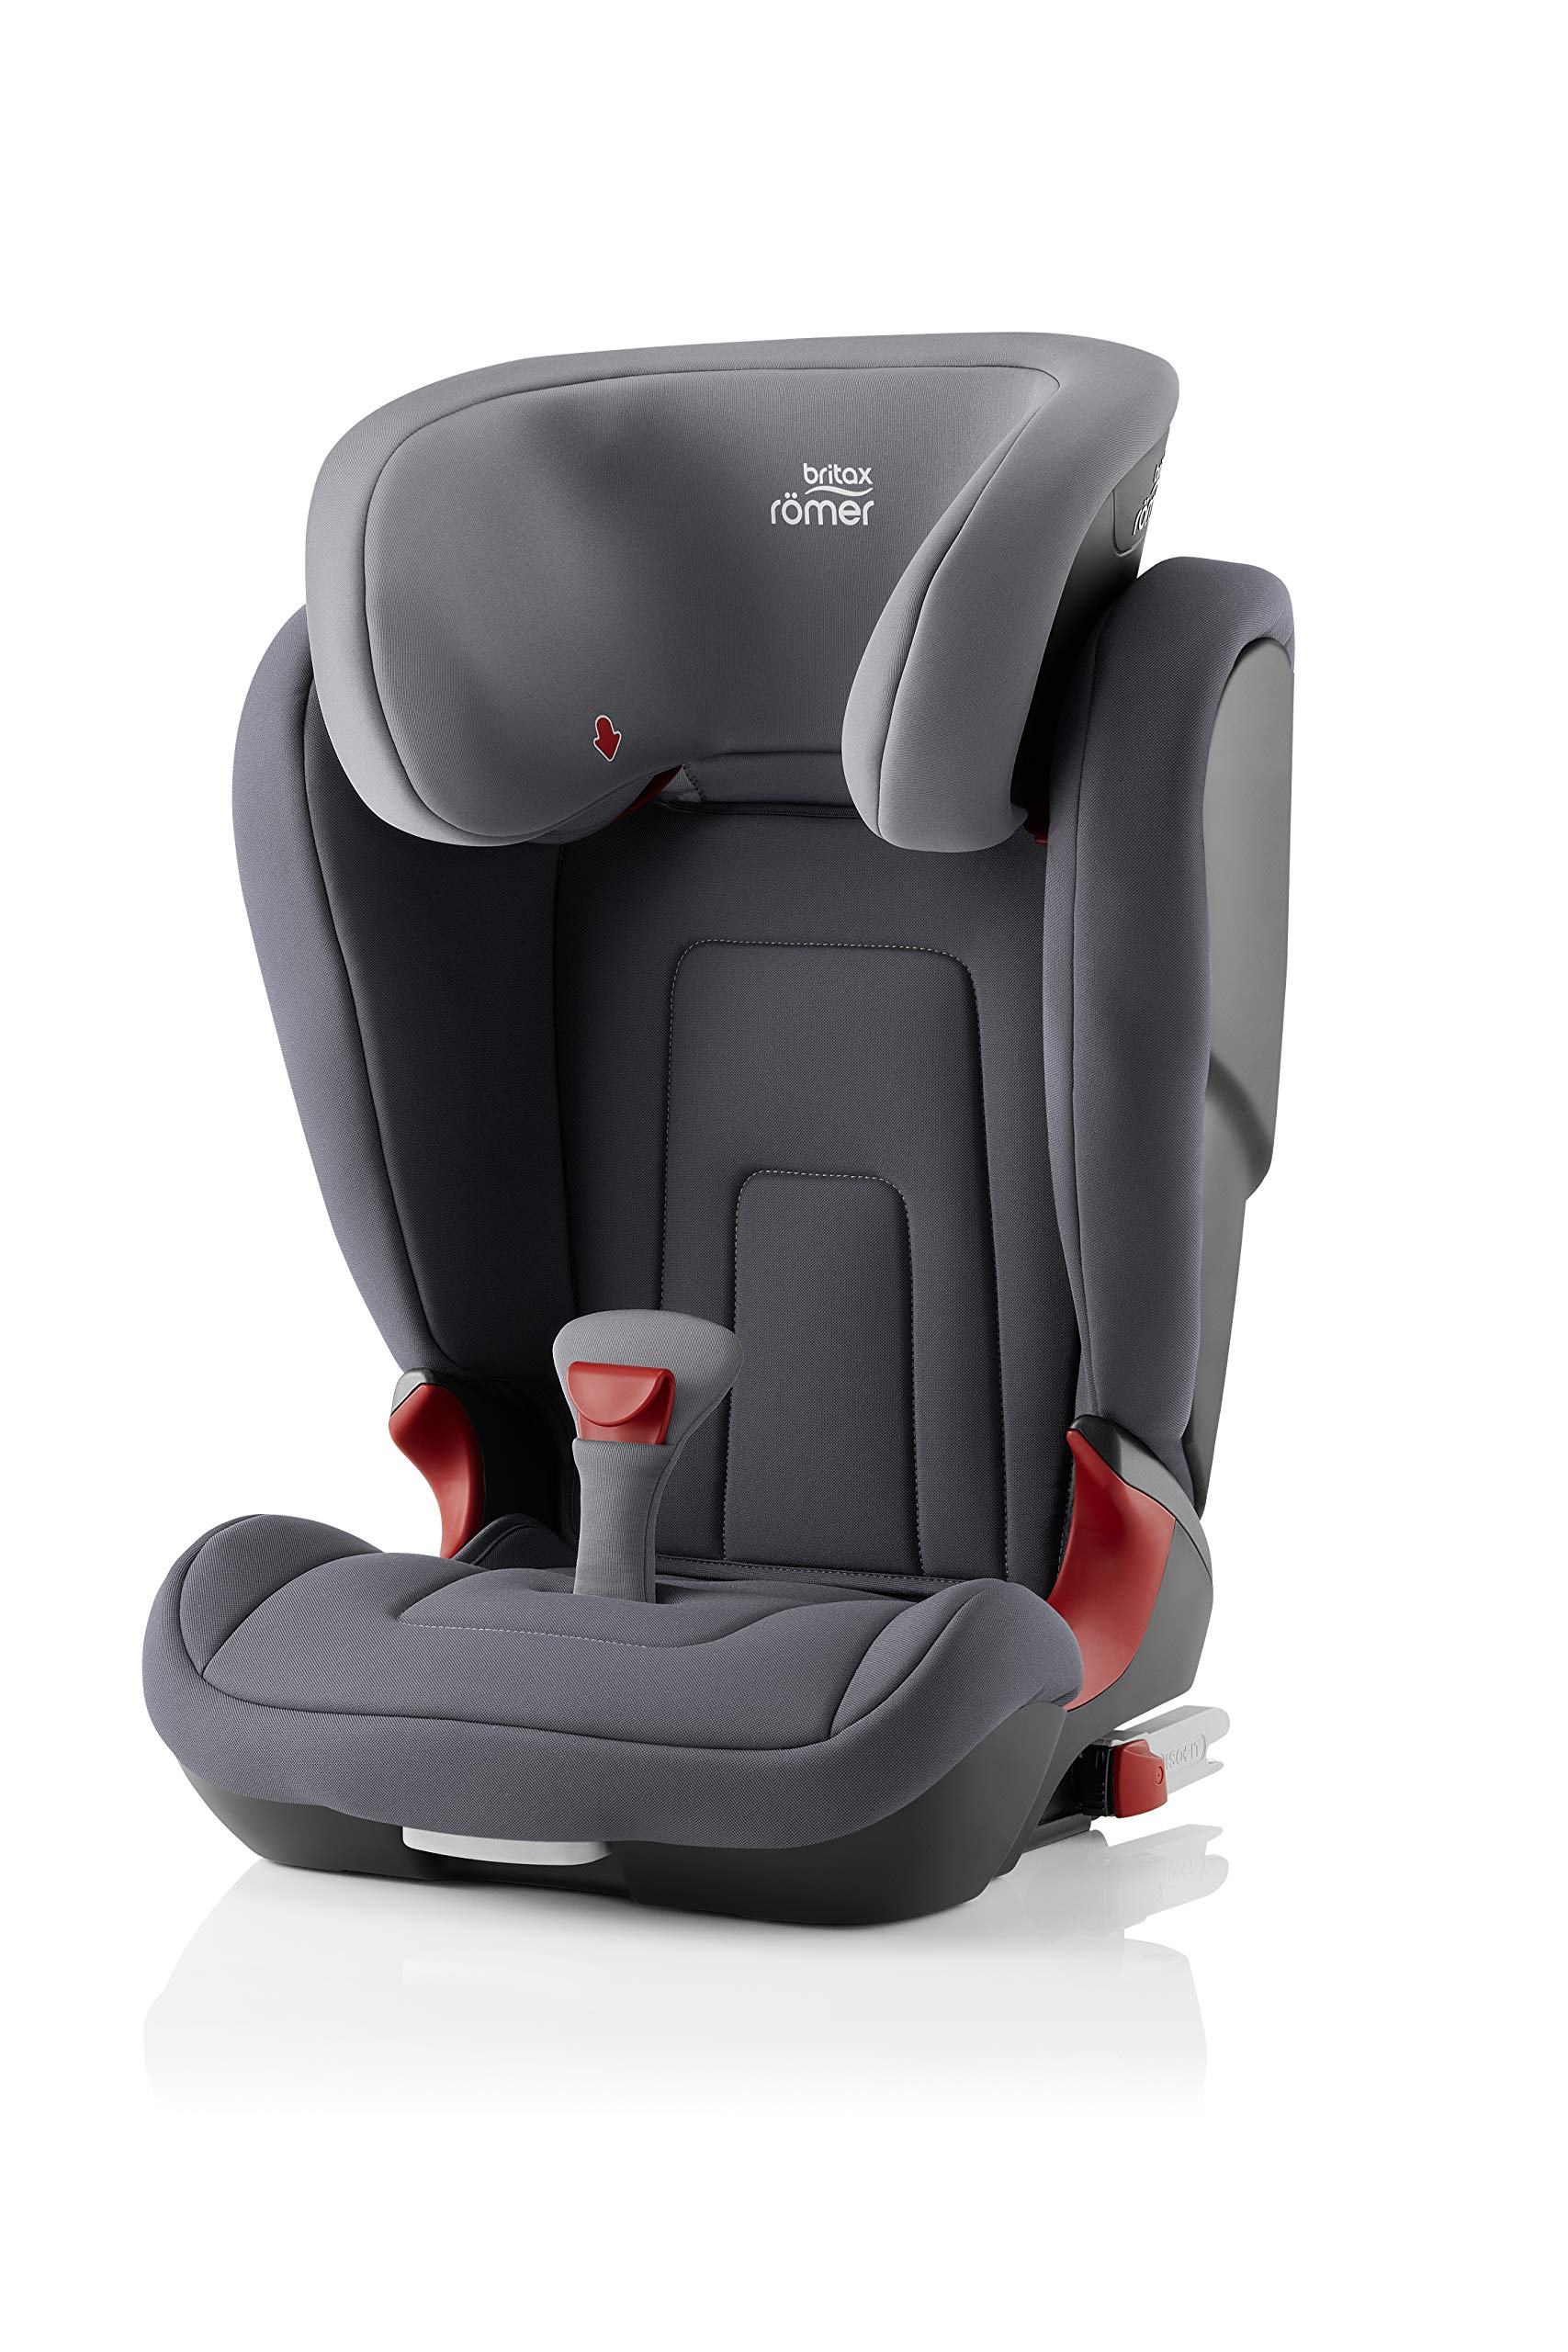 Britax Römer car seat 15-36 kg, KIDFIX 2 R Isofix group 2/3, Storm Grey Britax Römer Secure guard - helps to protect your child's delicate abdominal area by adding an extra - a 4th - contact point to the 3-point seat belt. High back booster - protects your child in 3 ways: provides head to hip protection; belt guides provide correct positioning of the seat belt and the padded headrest provides safety and comfort. Easy adjustable v-shaped backrest - designed to give optimum support to your growing child, the v-shaped backrest provides more space for their back and shoulders. 1